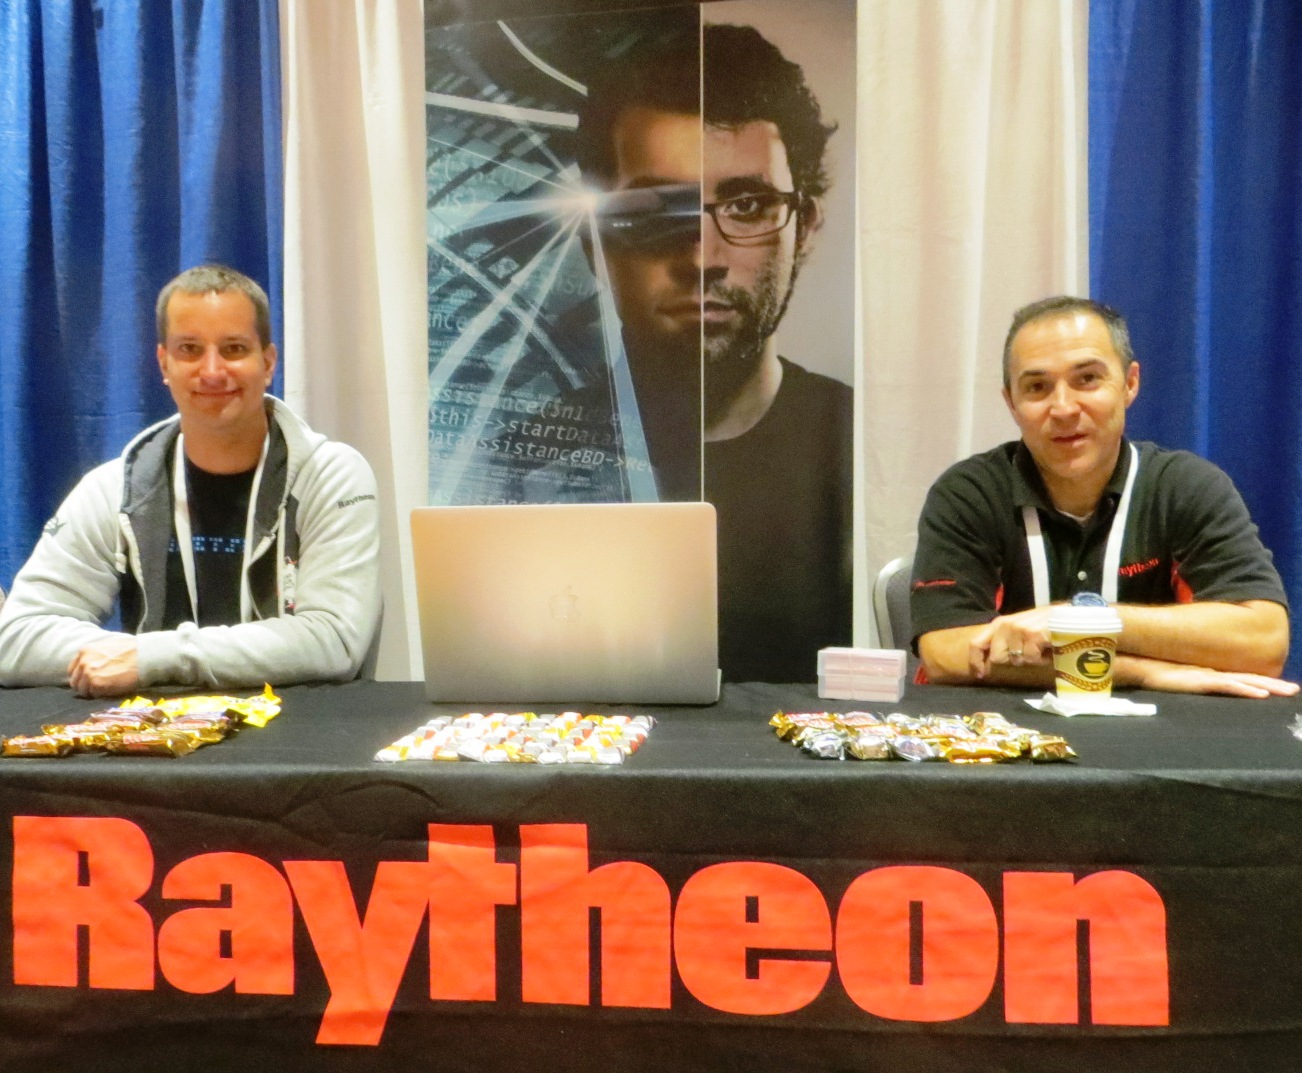 Many of the cleared jobs available in Massachusetts are with Raytheon